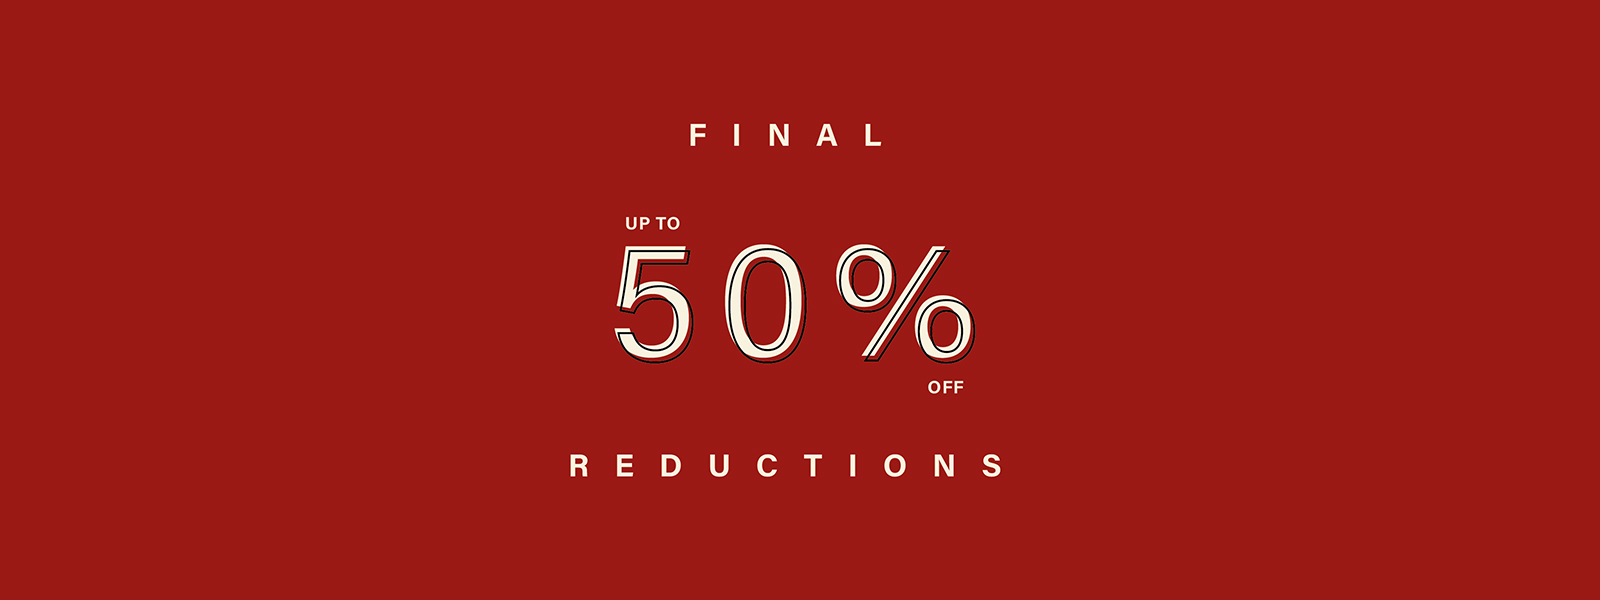 Final Reductions - All items now up to 50% off in our Summer Sale!